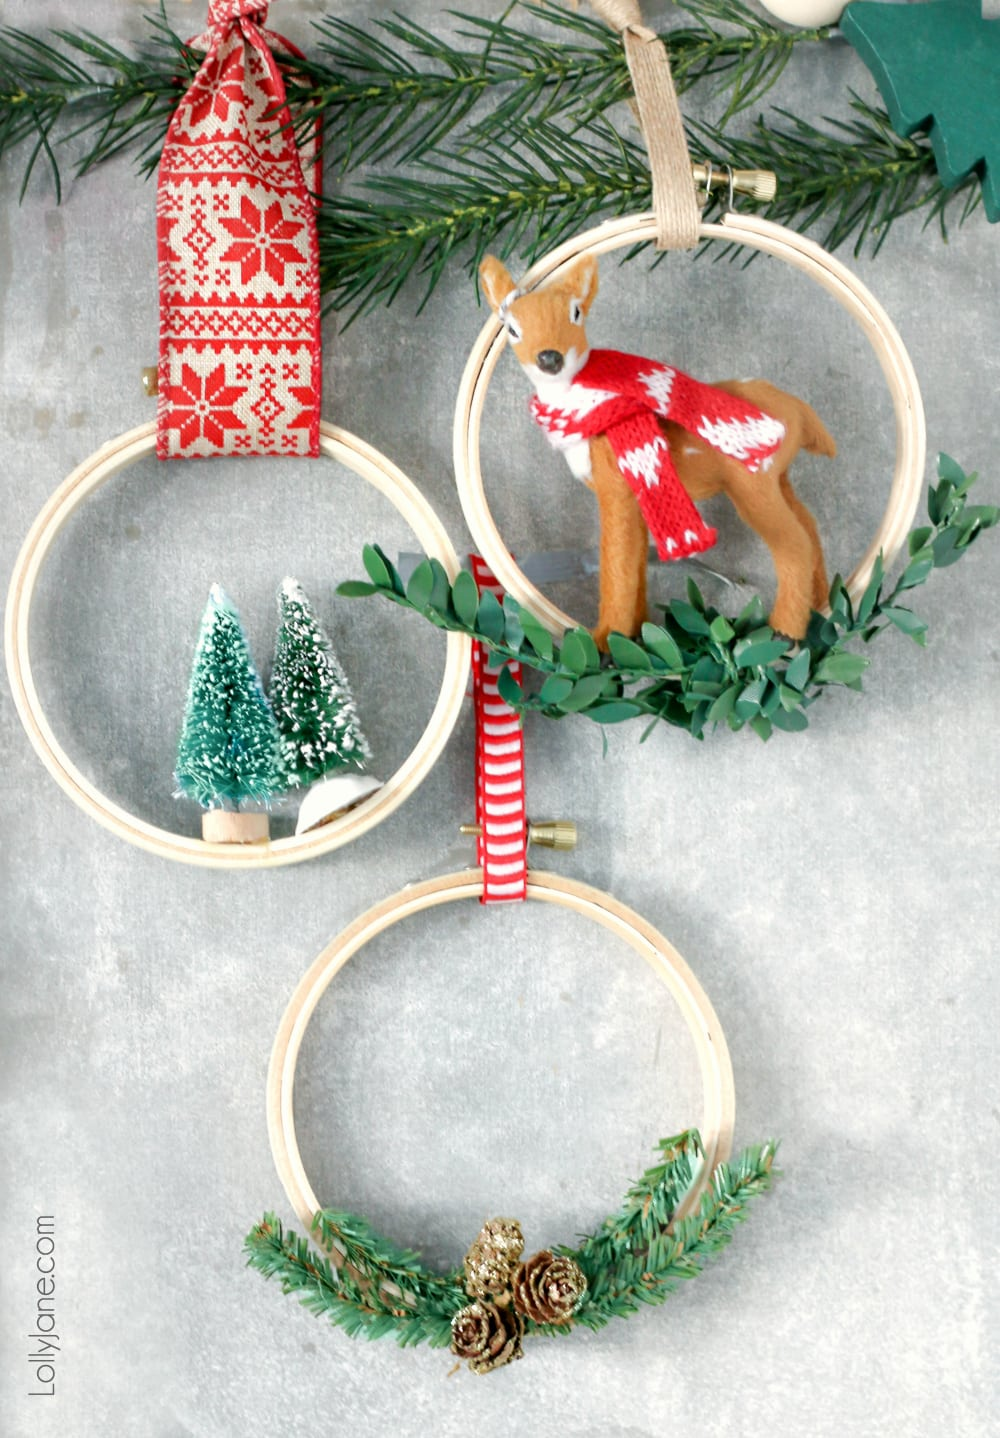 Make these cute + easy DIY Christmas Hoop Ornaments in NO TIME at all! So fun for the kids to help! #diy #diyornaments #christmasornaments #christmasdecorations